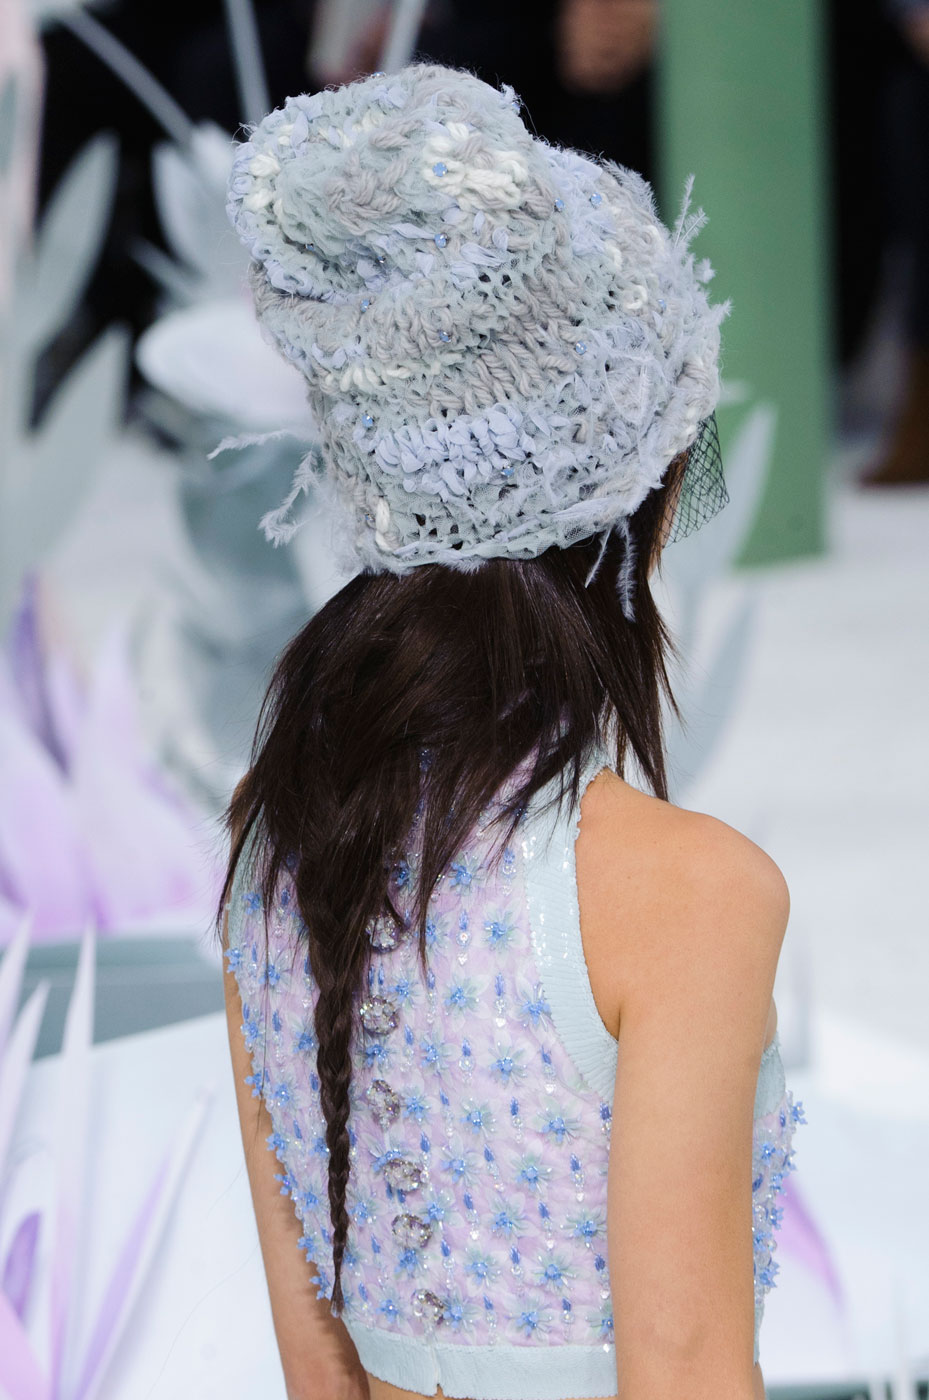 Chanel-fashion-runway-show-close-ups-haute-couture-paris-spring-summer-2015-the-impression-119